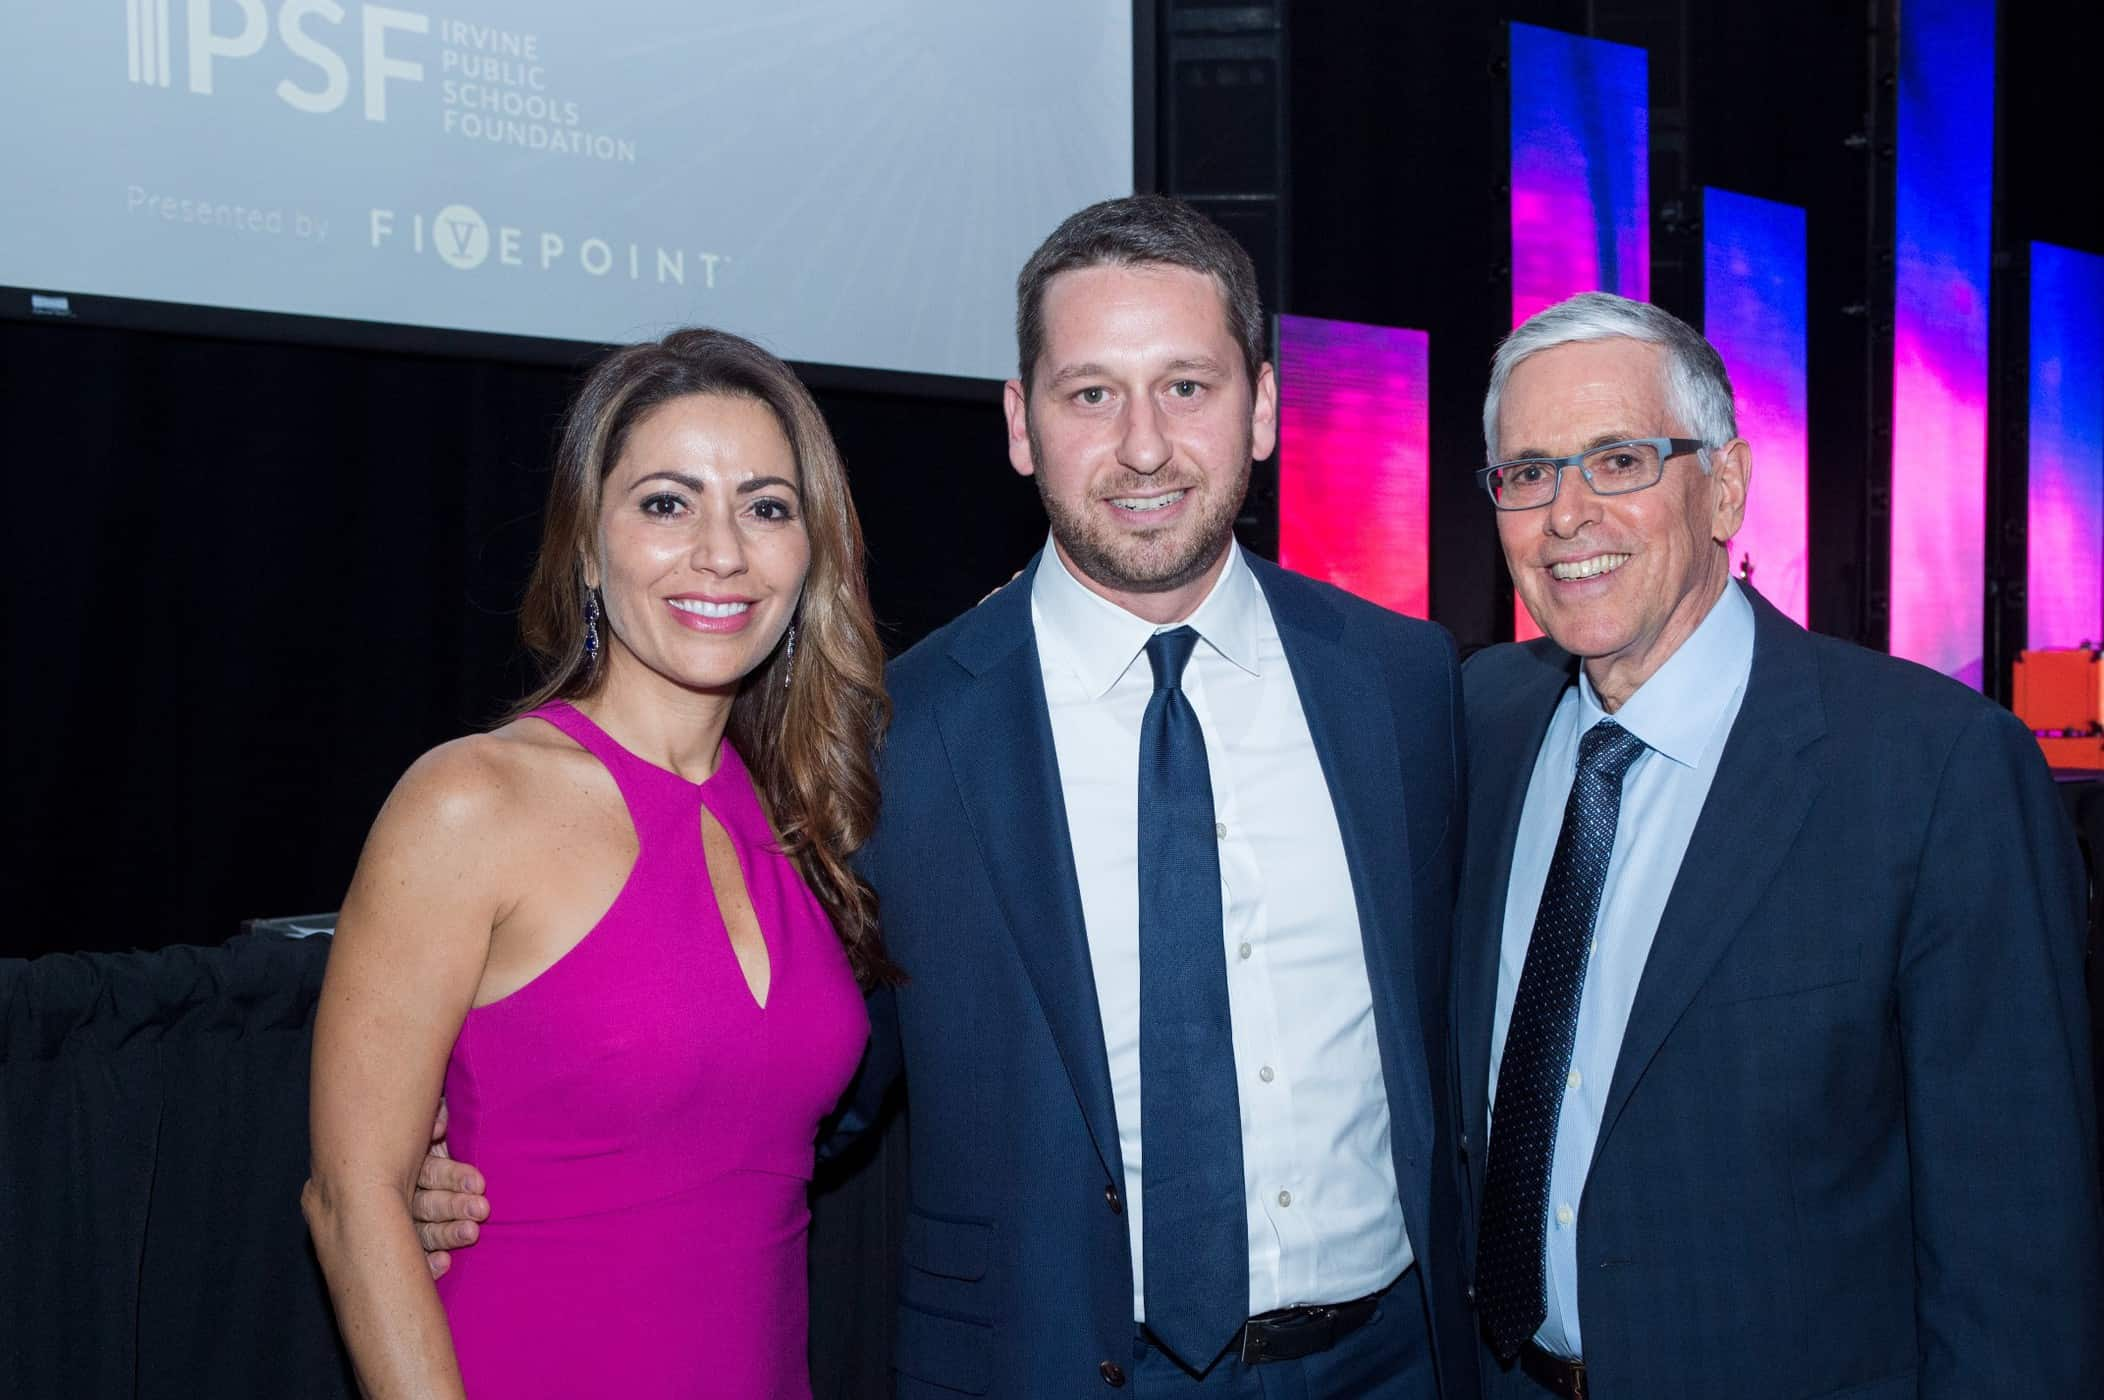 IRVINE COMMUNITY UNITES IN SUPPORT OF EDUCATIONAL EXCELLENCE